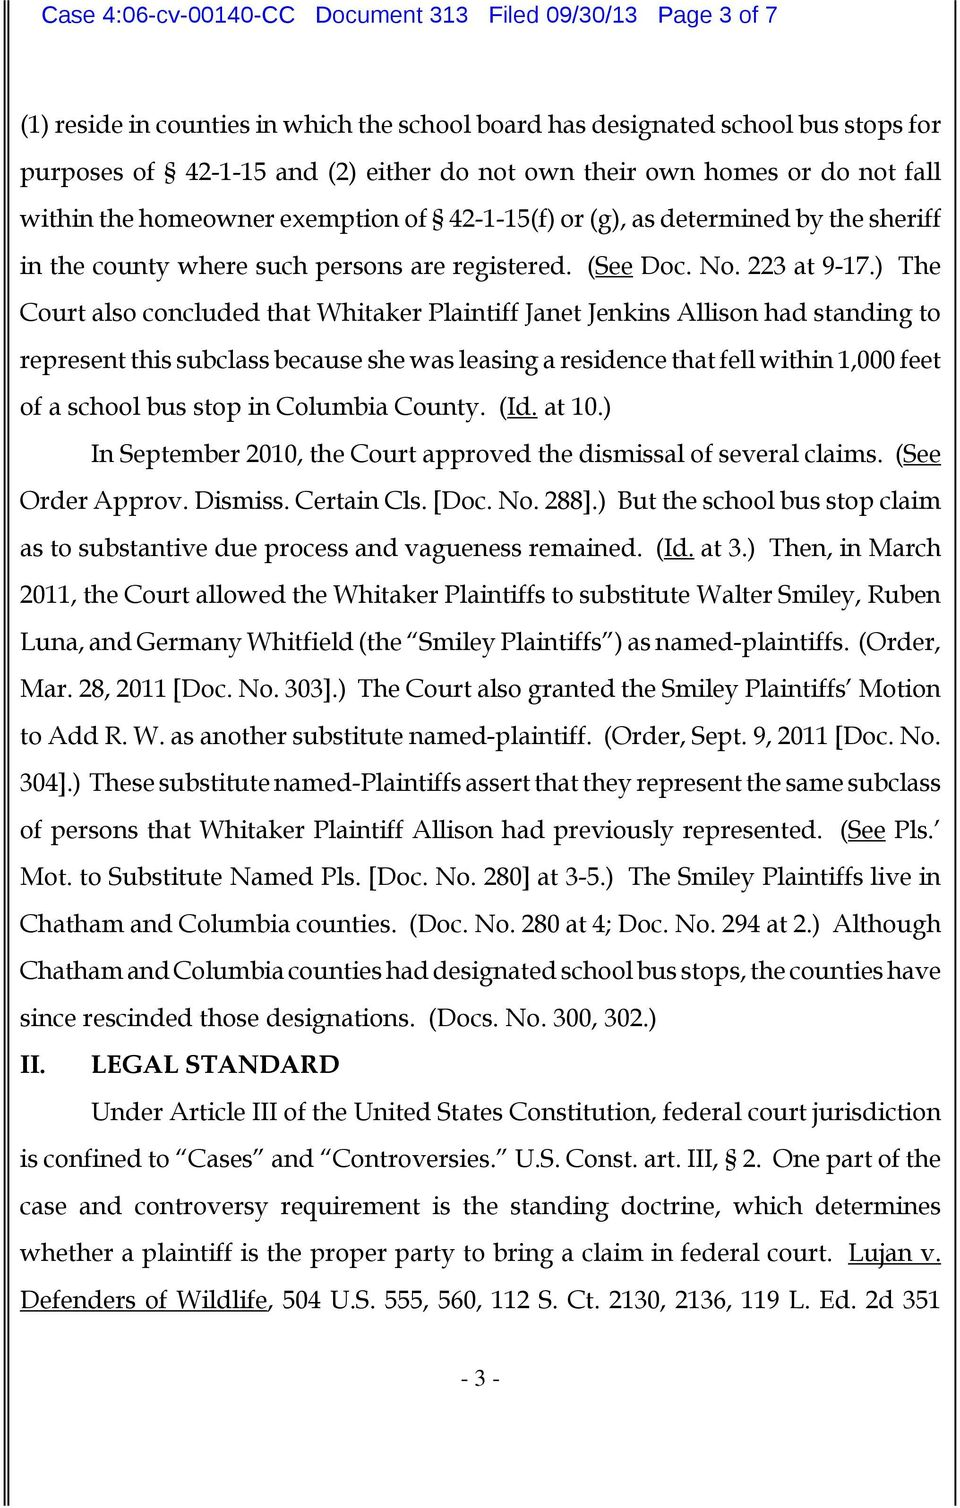 ) The Court also concluded that Whitaker Plaintiff Janet Jenkins Allison had standing to represent this subclass because she was leasing a residence that fell within 1,000 feet of a school bus stop